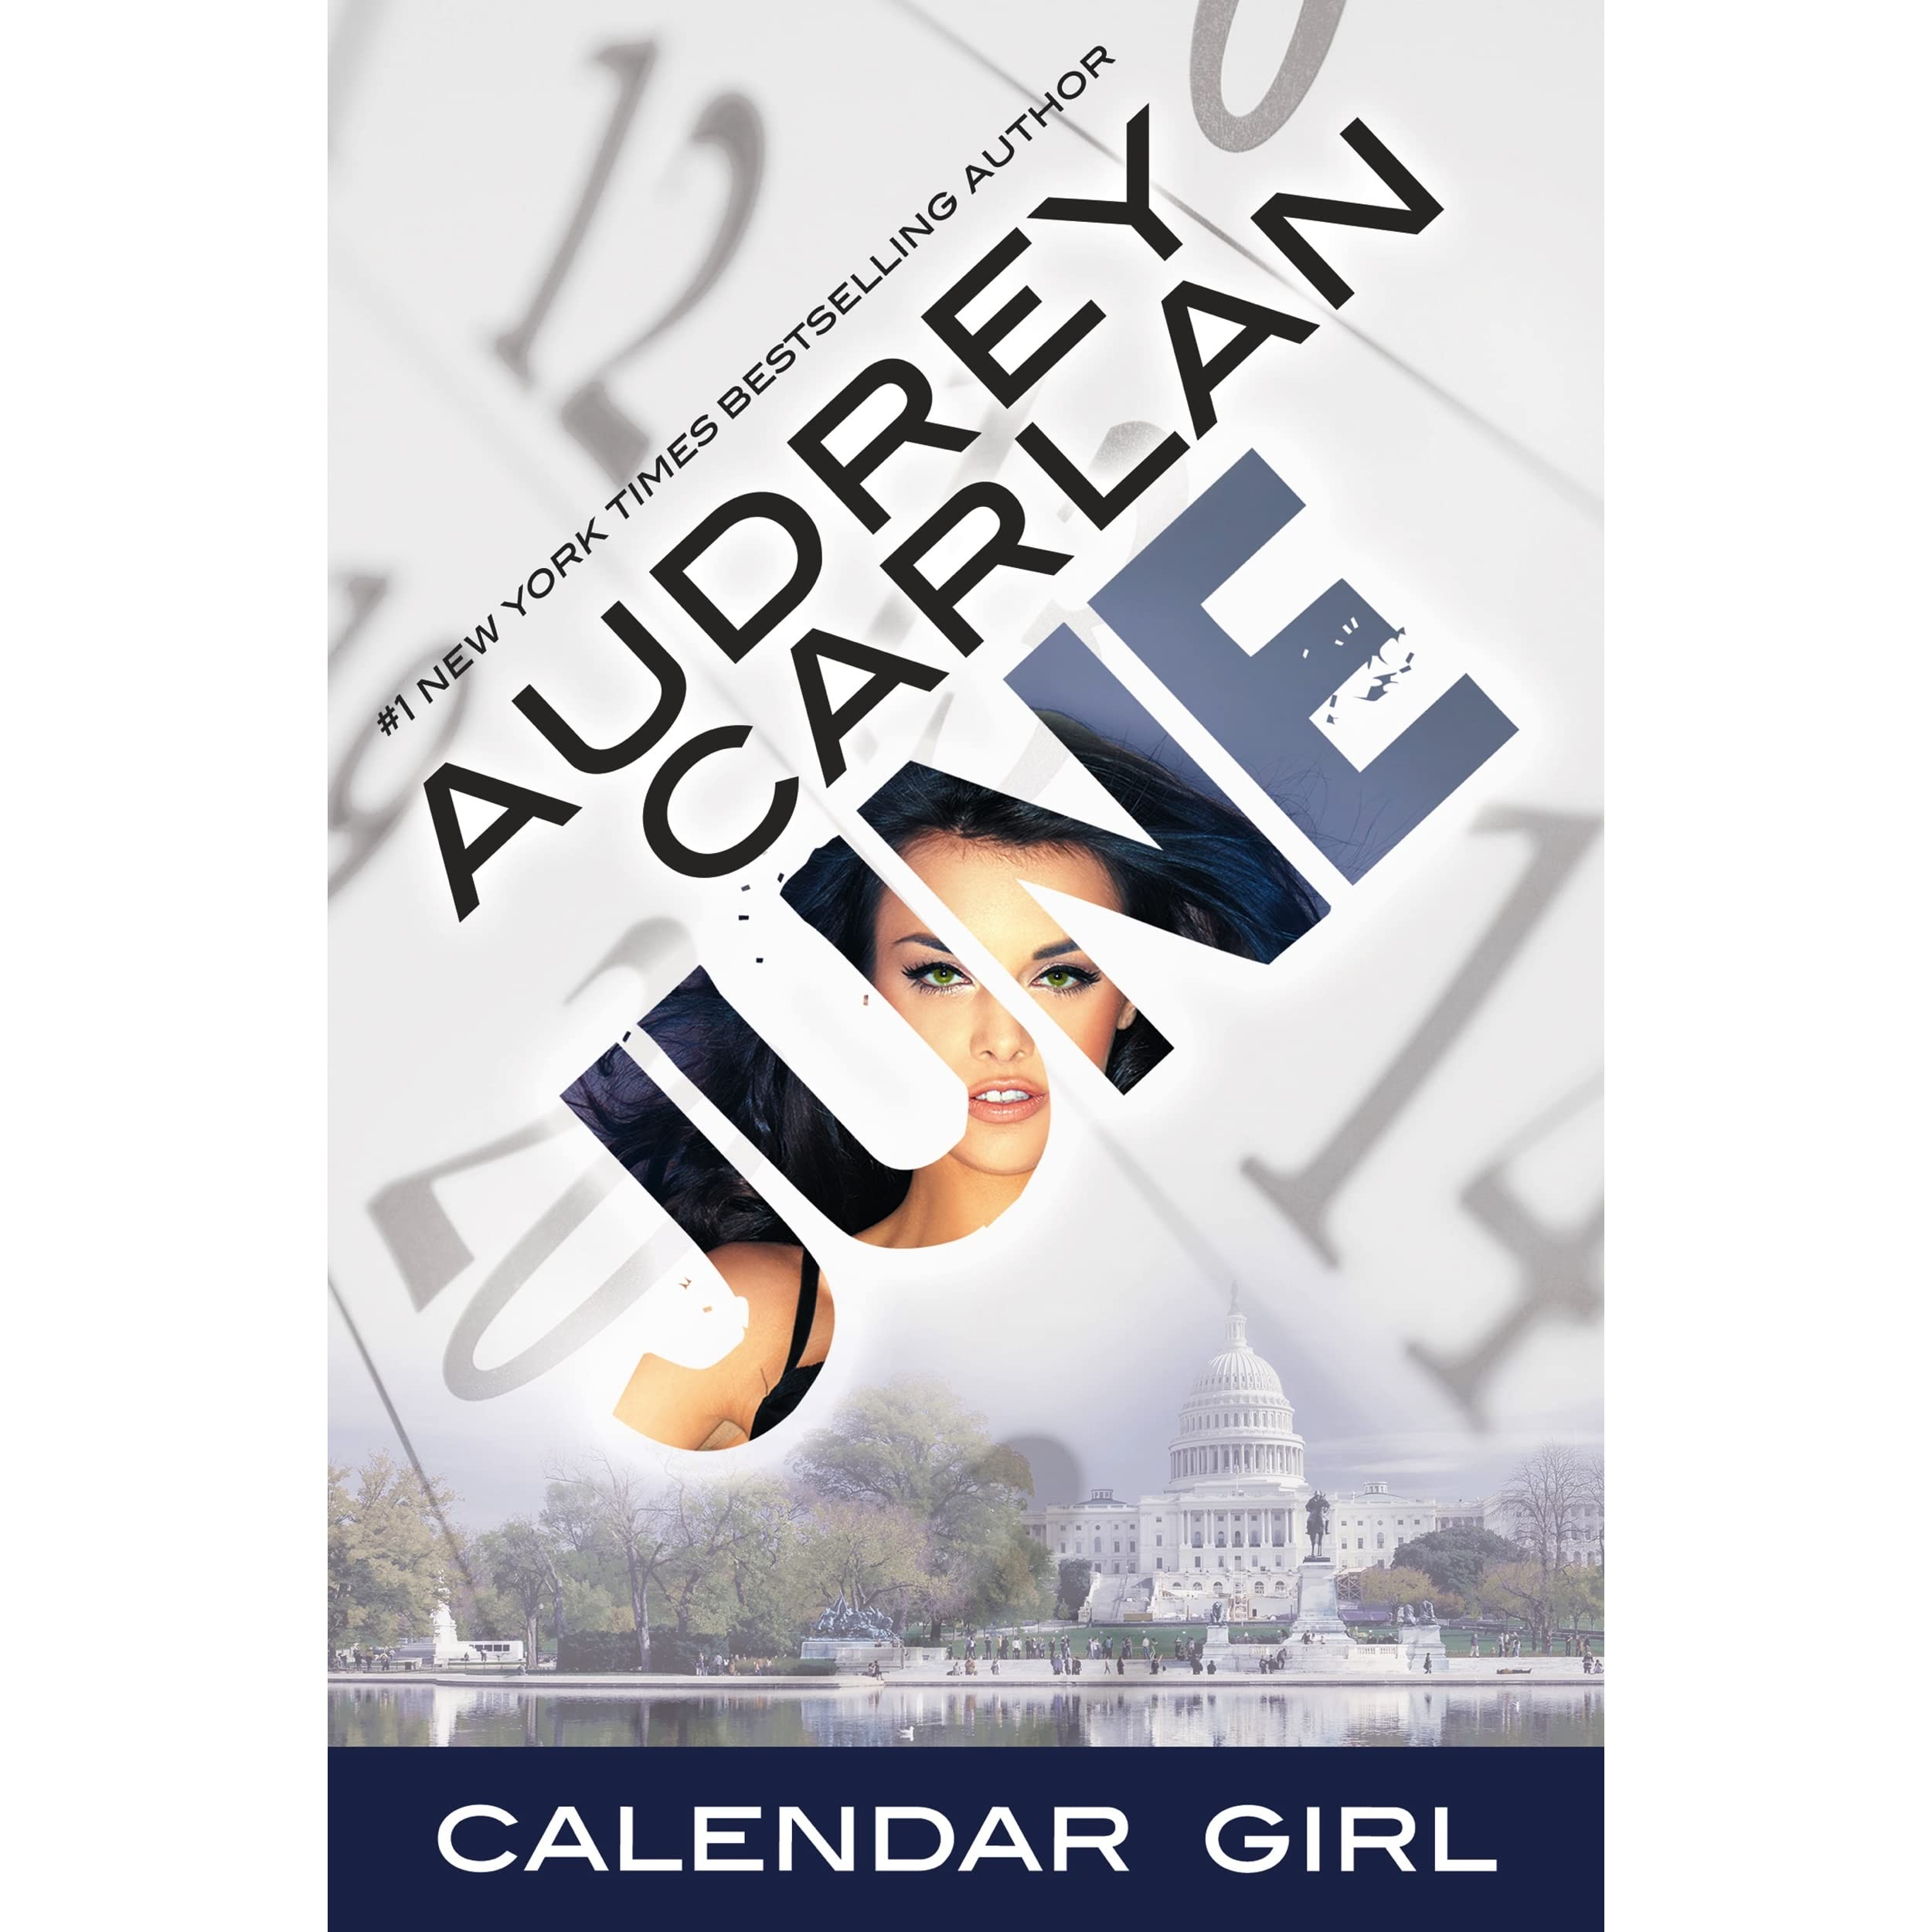 June Calendar Girl Read : June calendar girl by audrey carlan — reviews